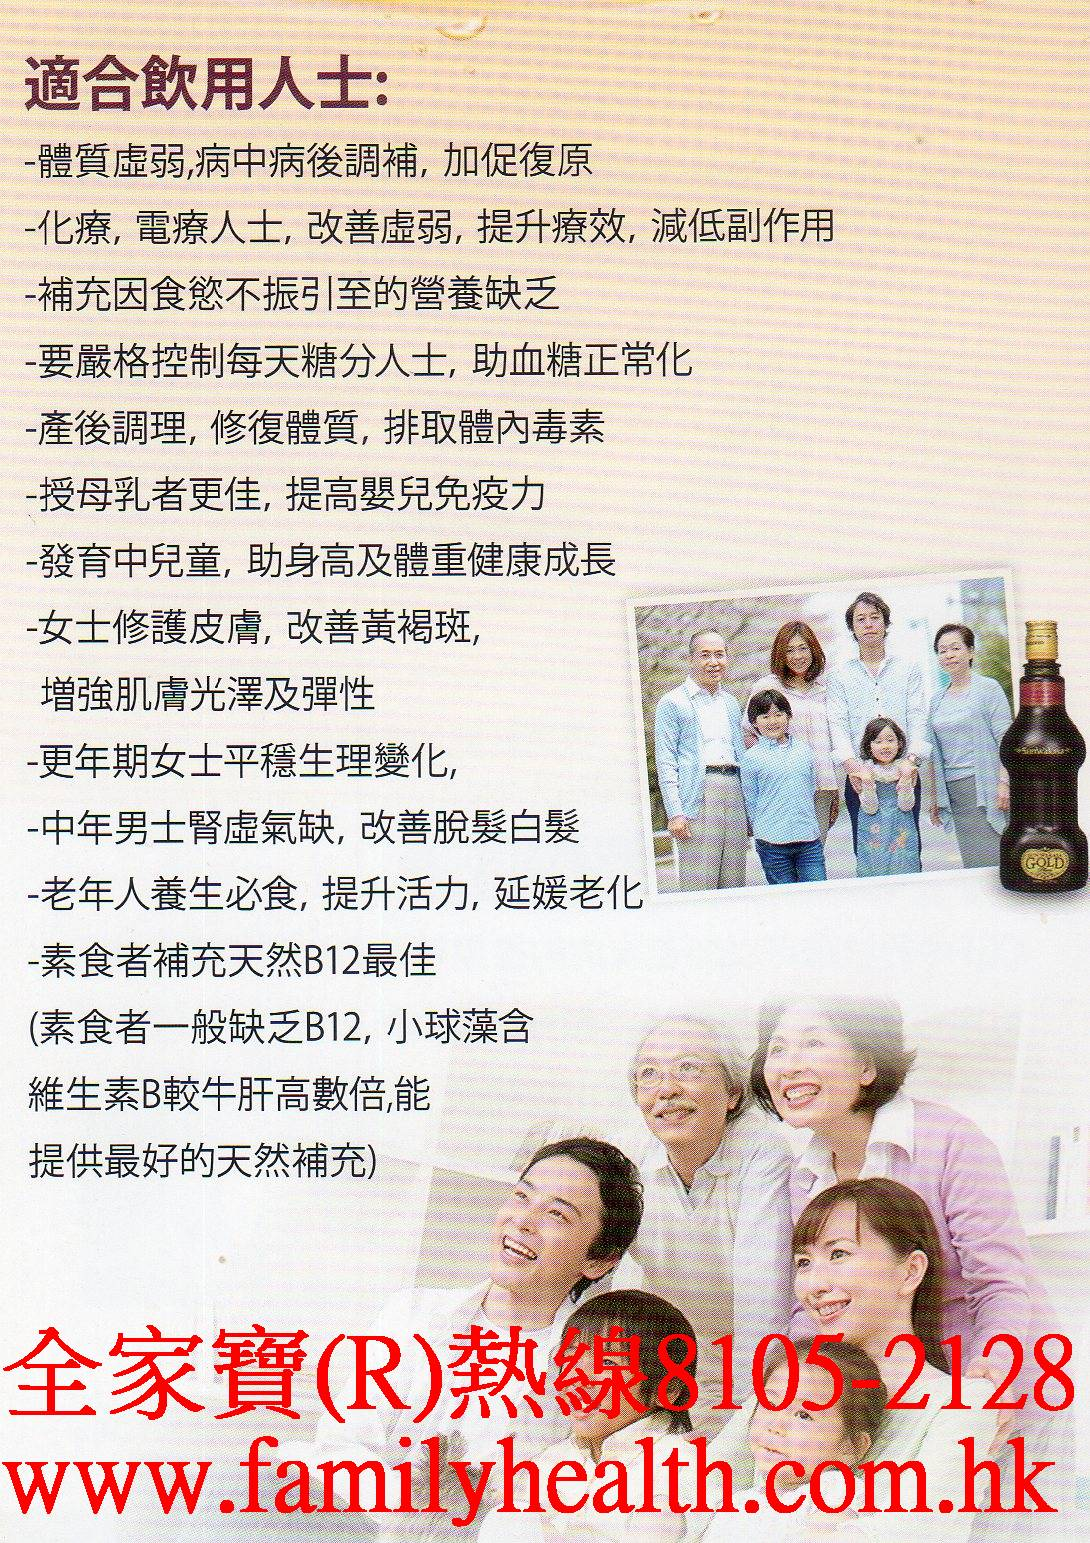 http://www.familyhealth.com.hk/files/full/1023_2.jpg